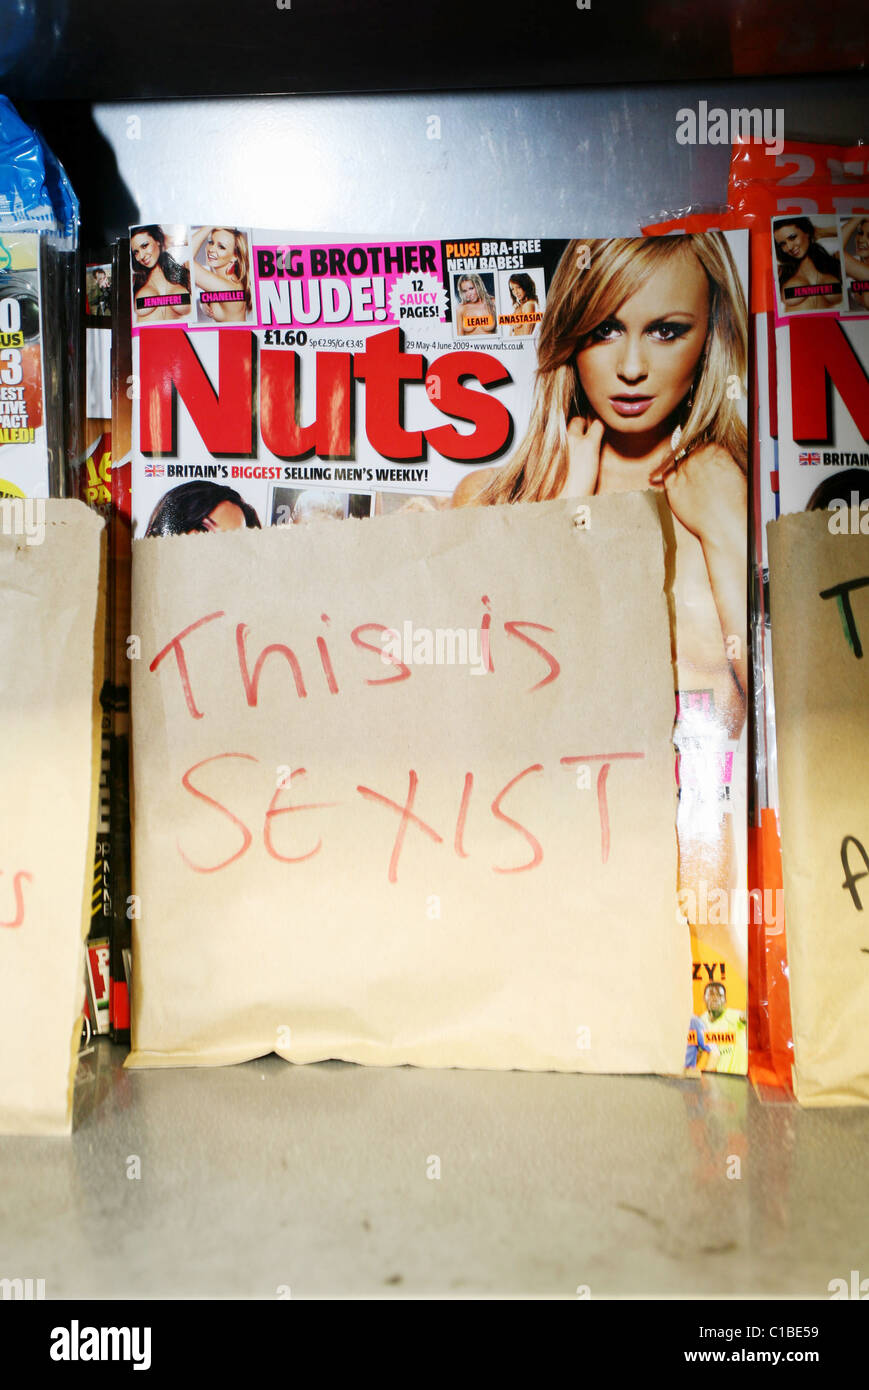 Discussion on this topic: Julia van os nude sexy, lads-magazines/